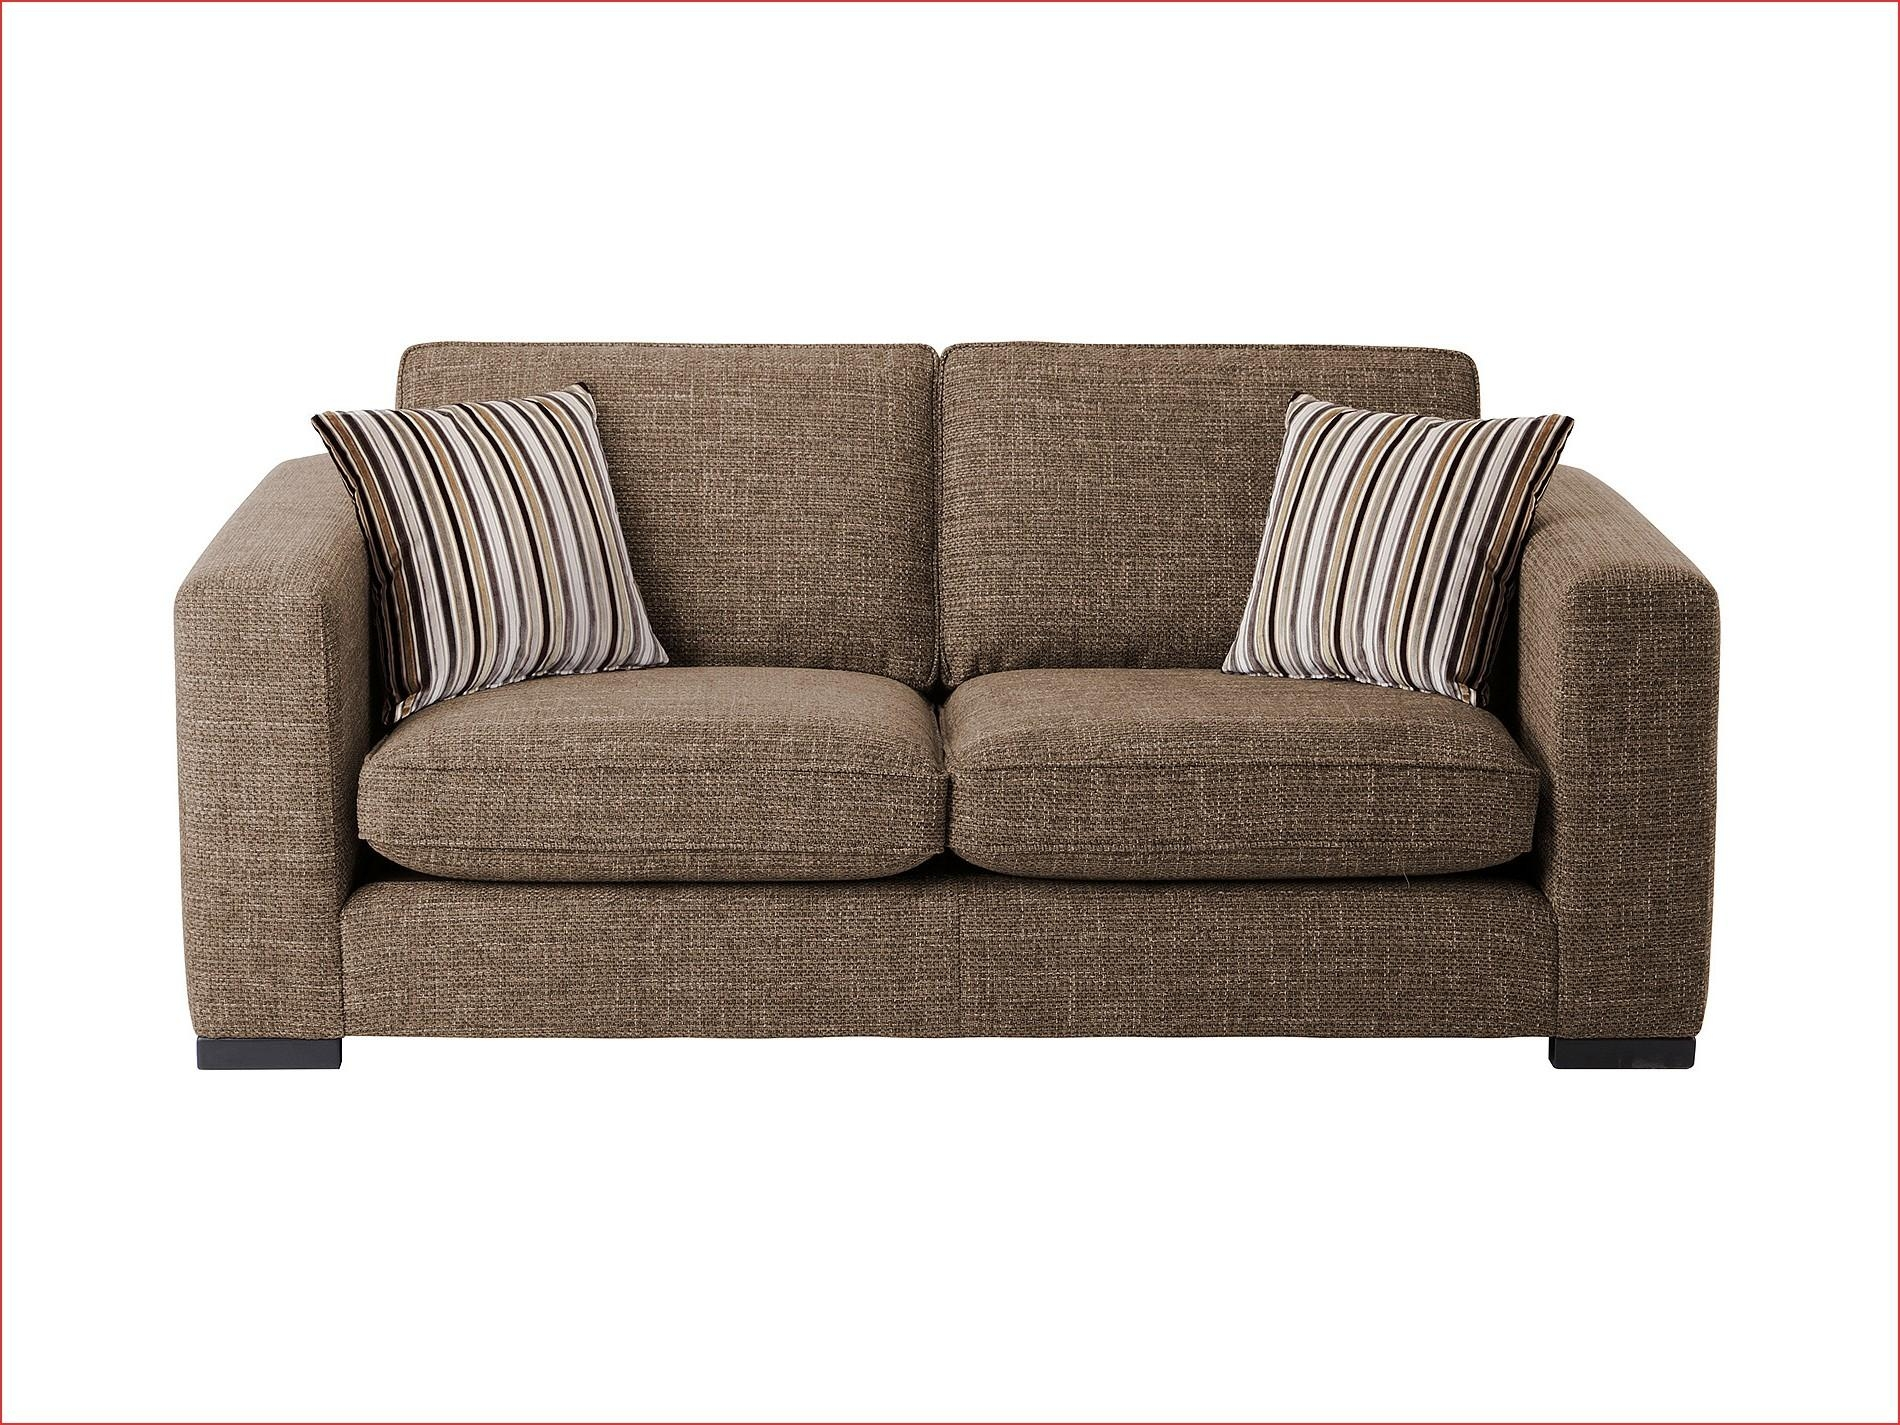 Casual Sofas And Chairs Awesome Coaster Casual Sofa Co S – Hkspa Regarding Casual Sofas And Chairs (Image 8 of 21)